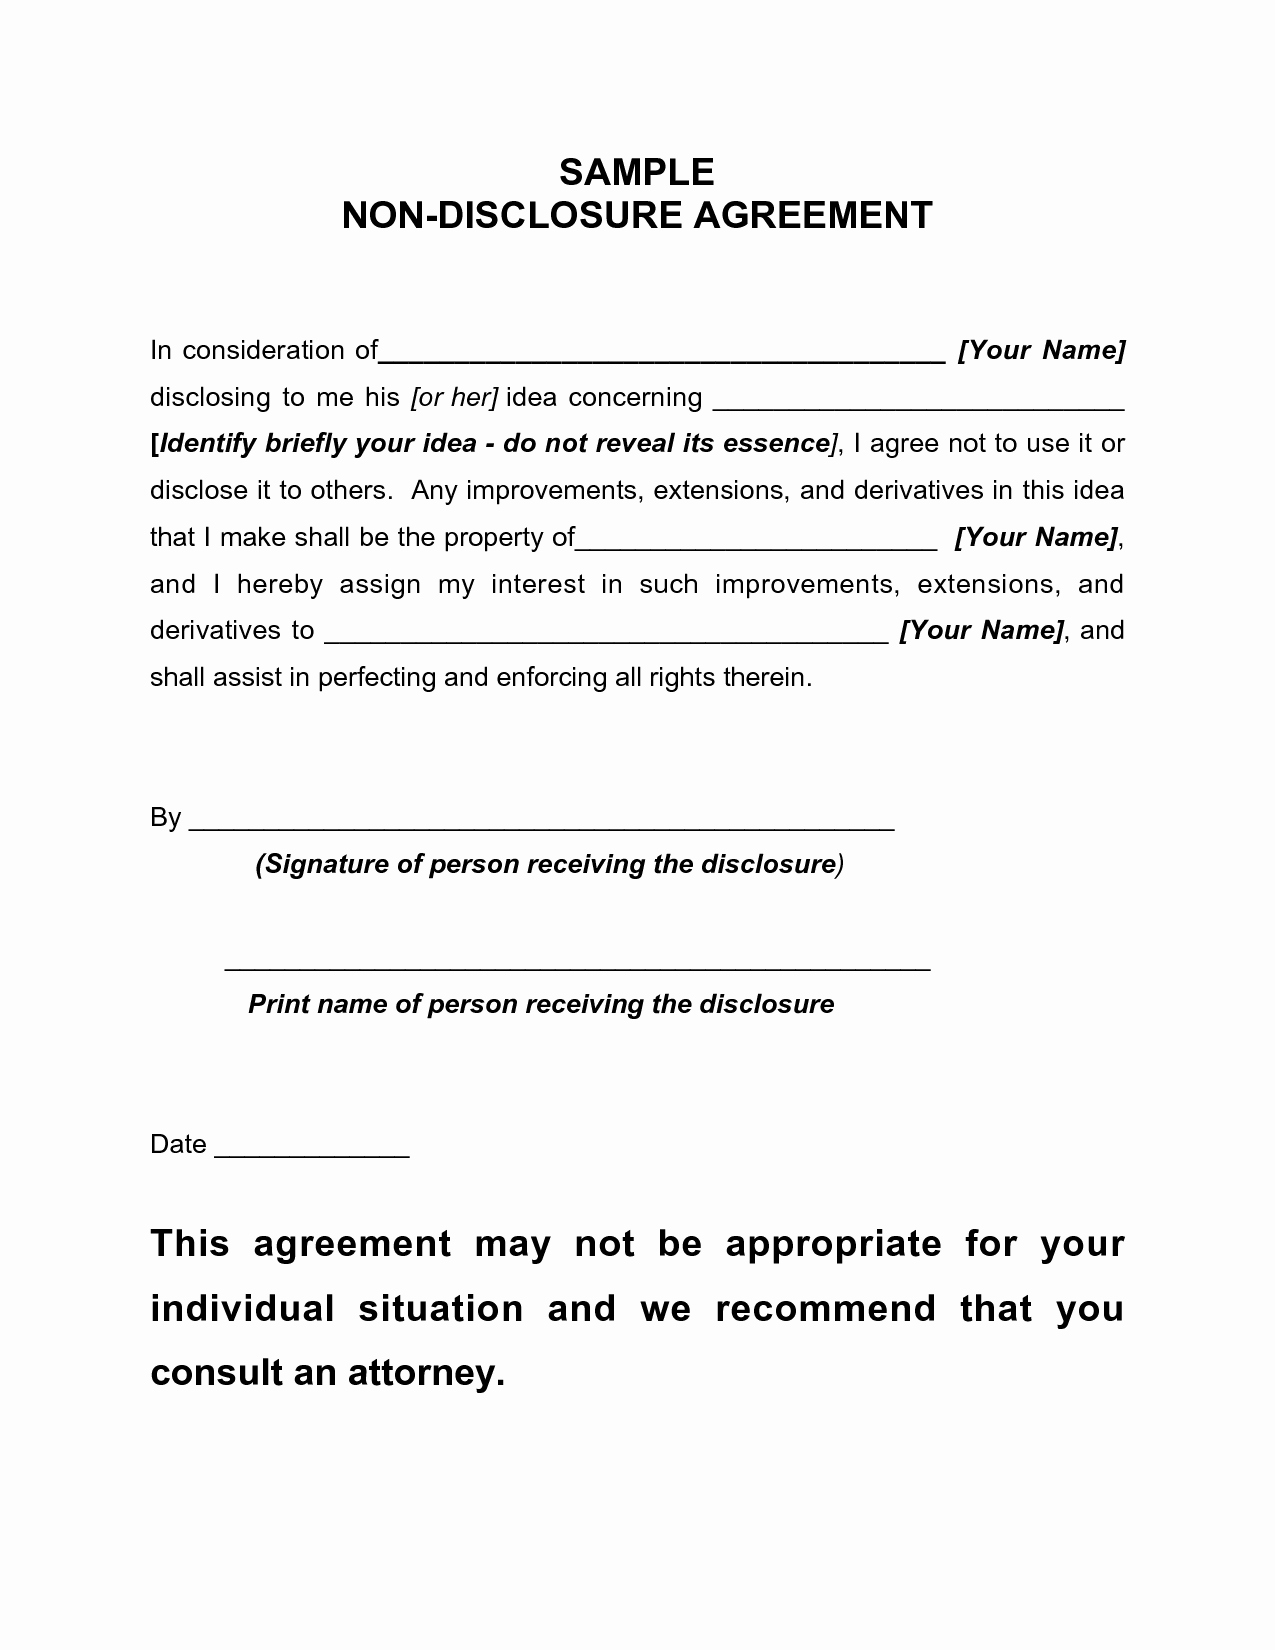 Non Disclosure Agreement Template Pdf Inspirational Non Disclosure Agreement Sample Free Printable Documents